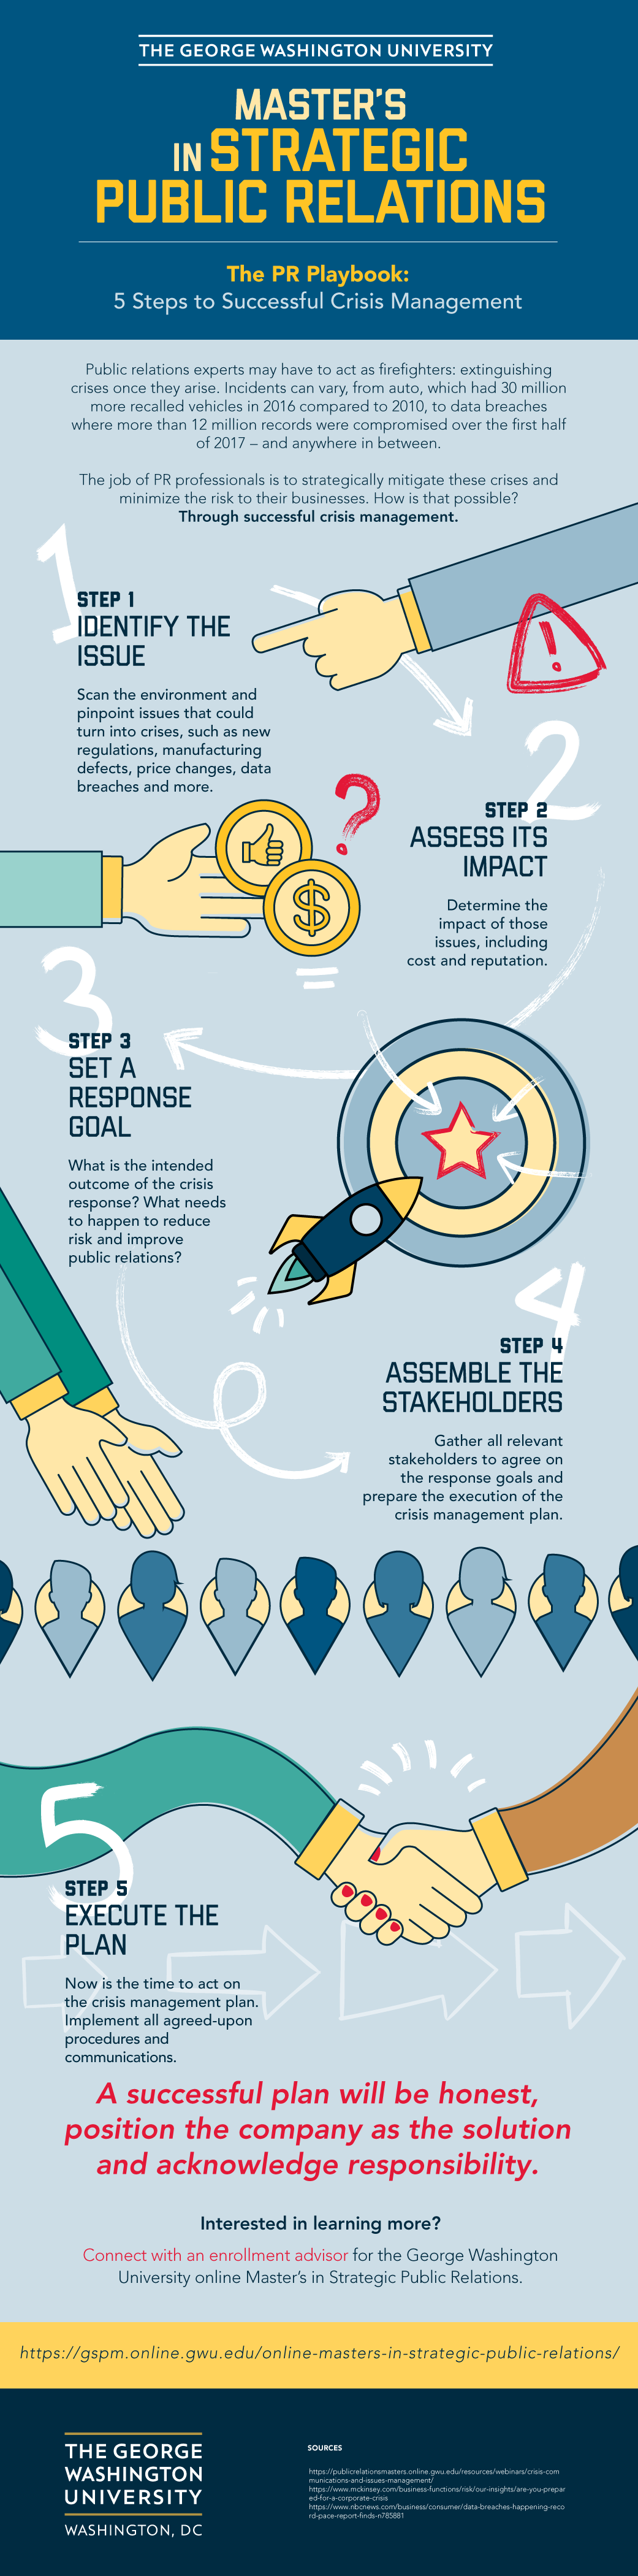 Infographic: 5 Steps to Successful Crisis Management